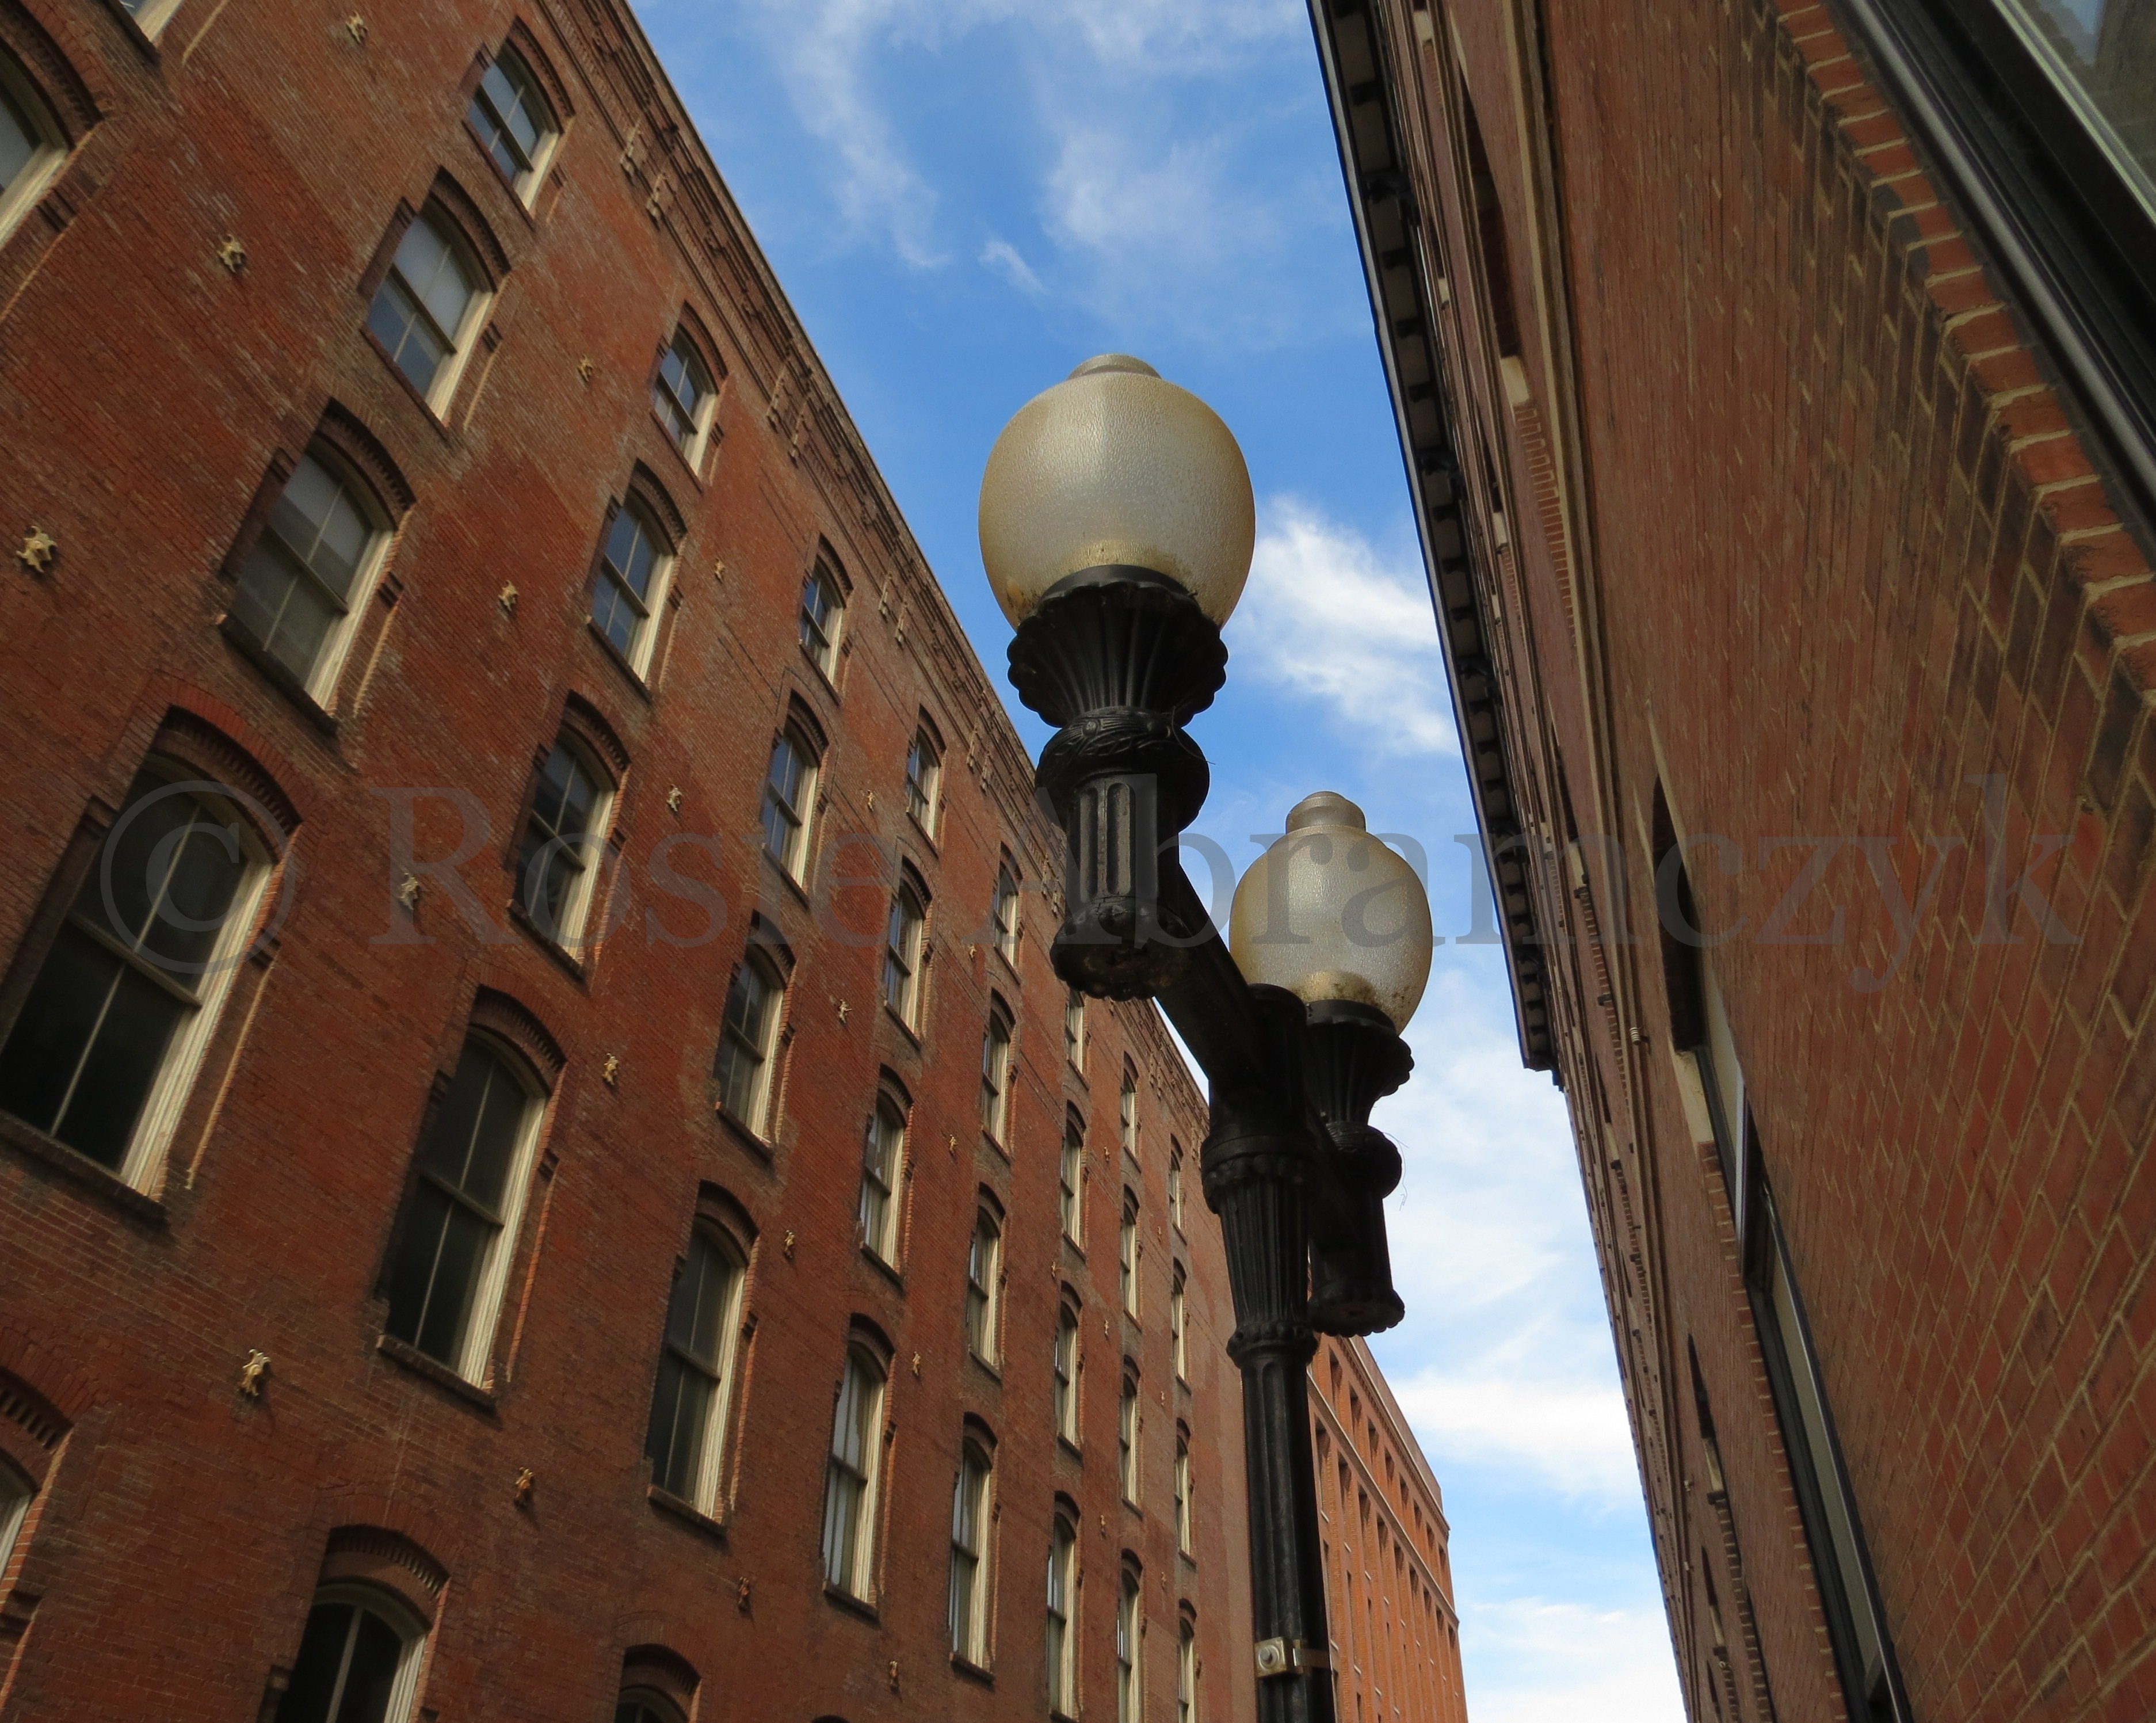 Laclede's Landing, St. Louis, MO, by Rosie Abramczyk, Photo, 2014